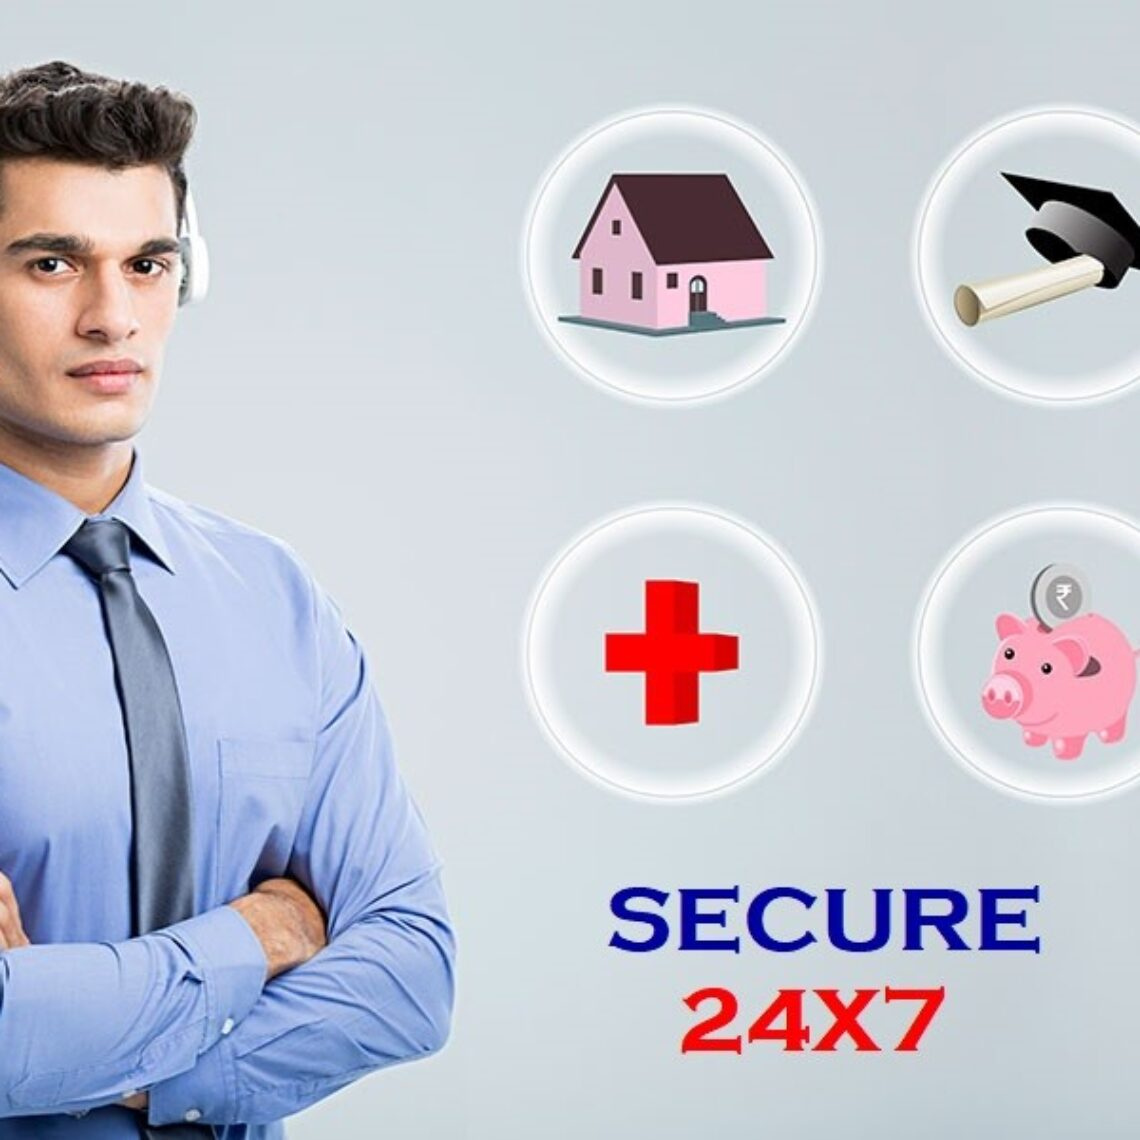 SECURE 24X7 PROJECT